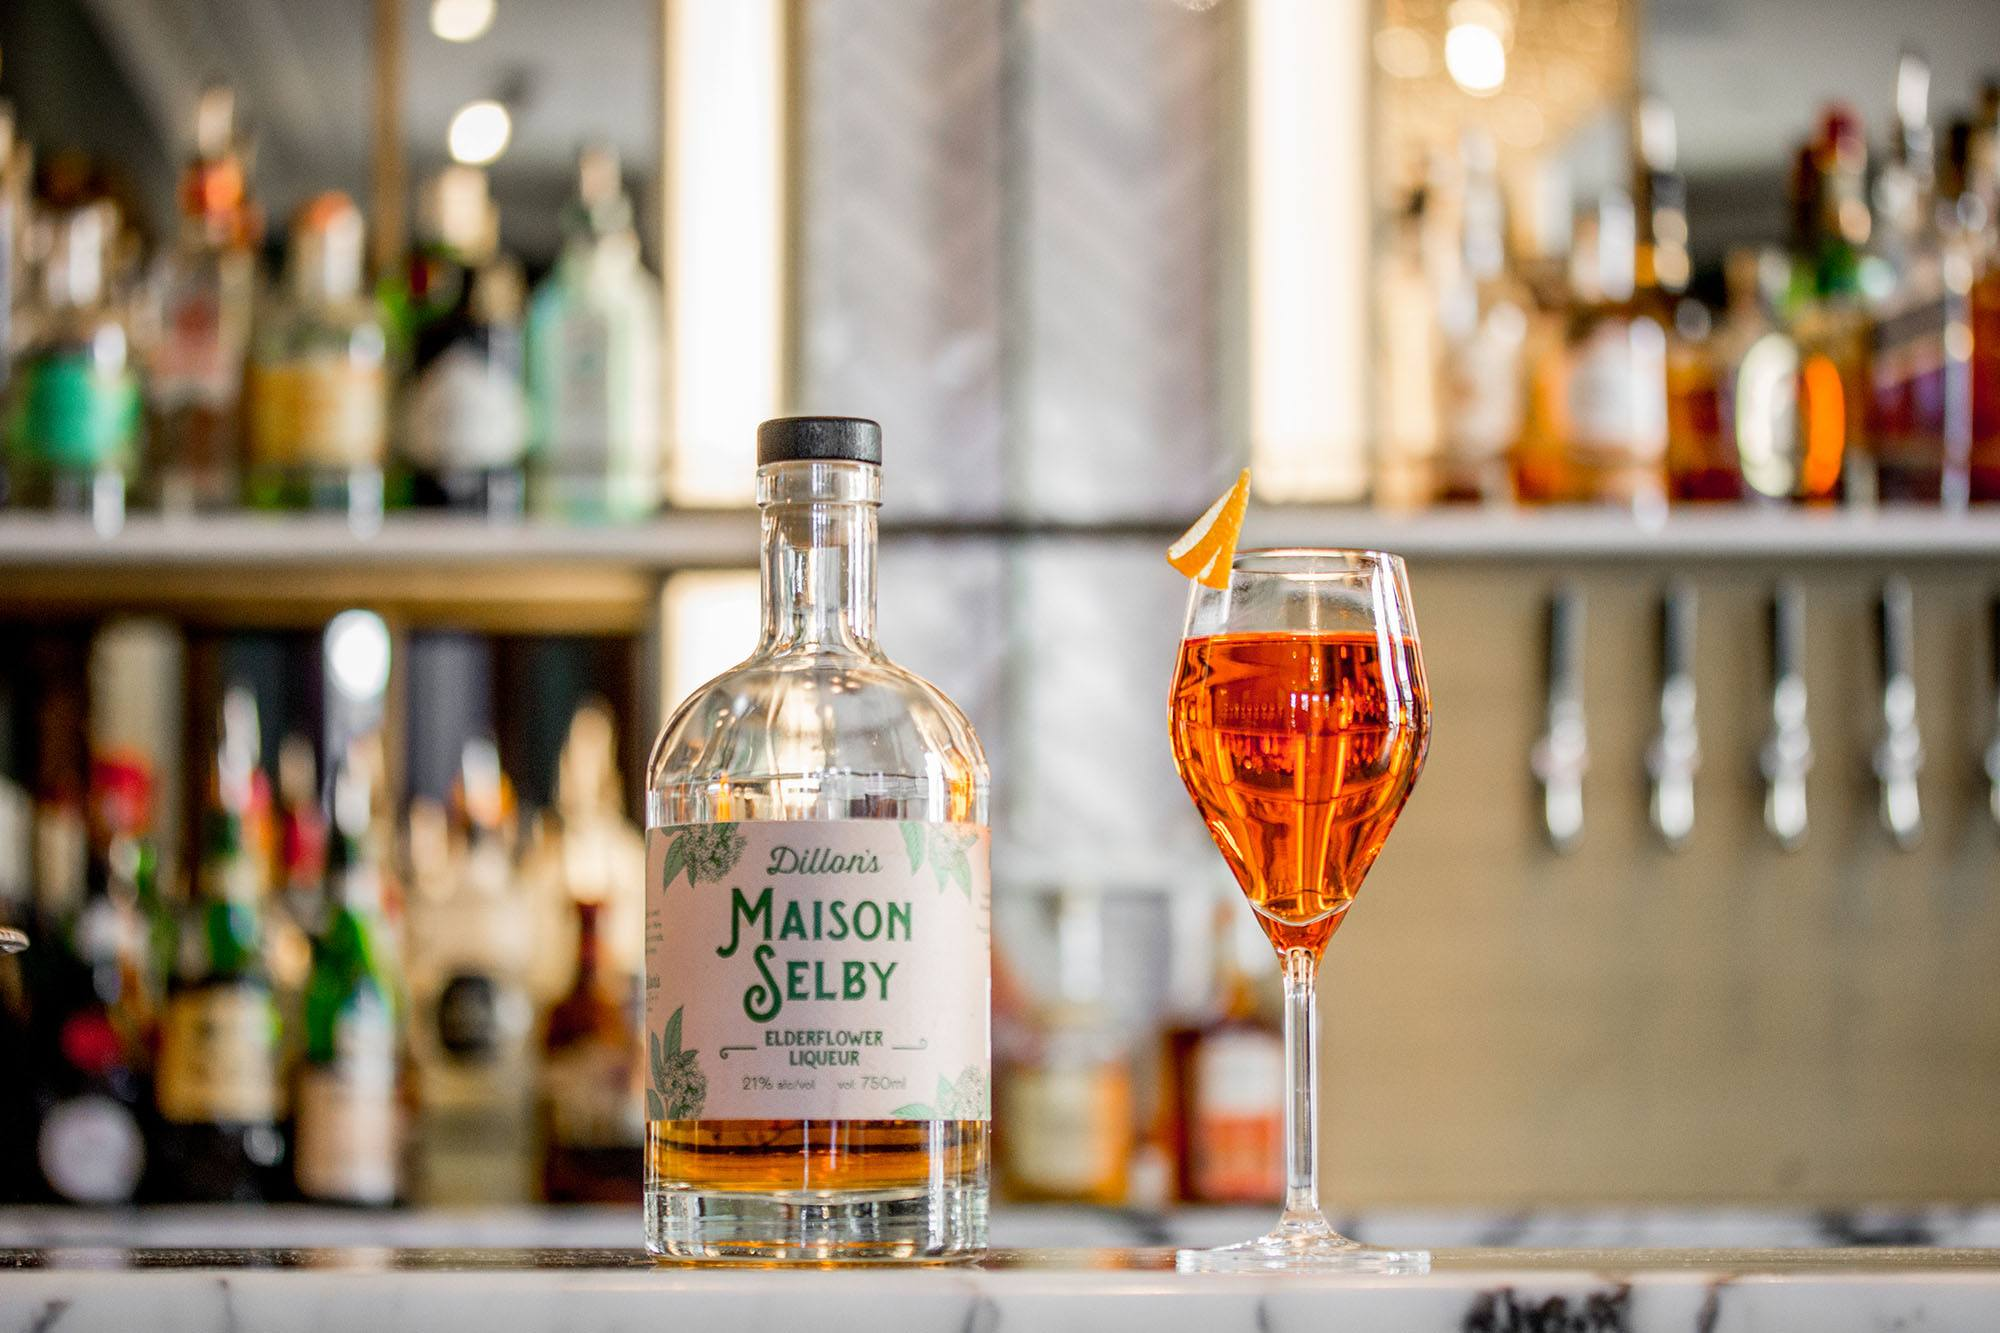 Maison Selby Elderflower Spritz